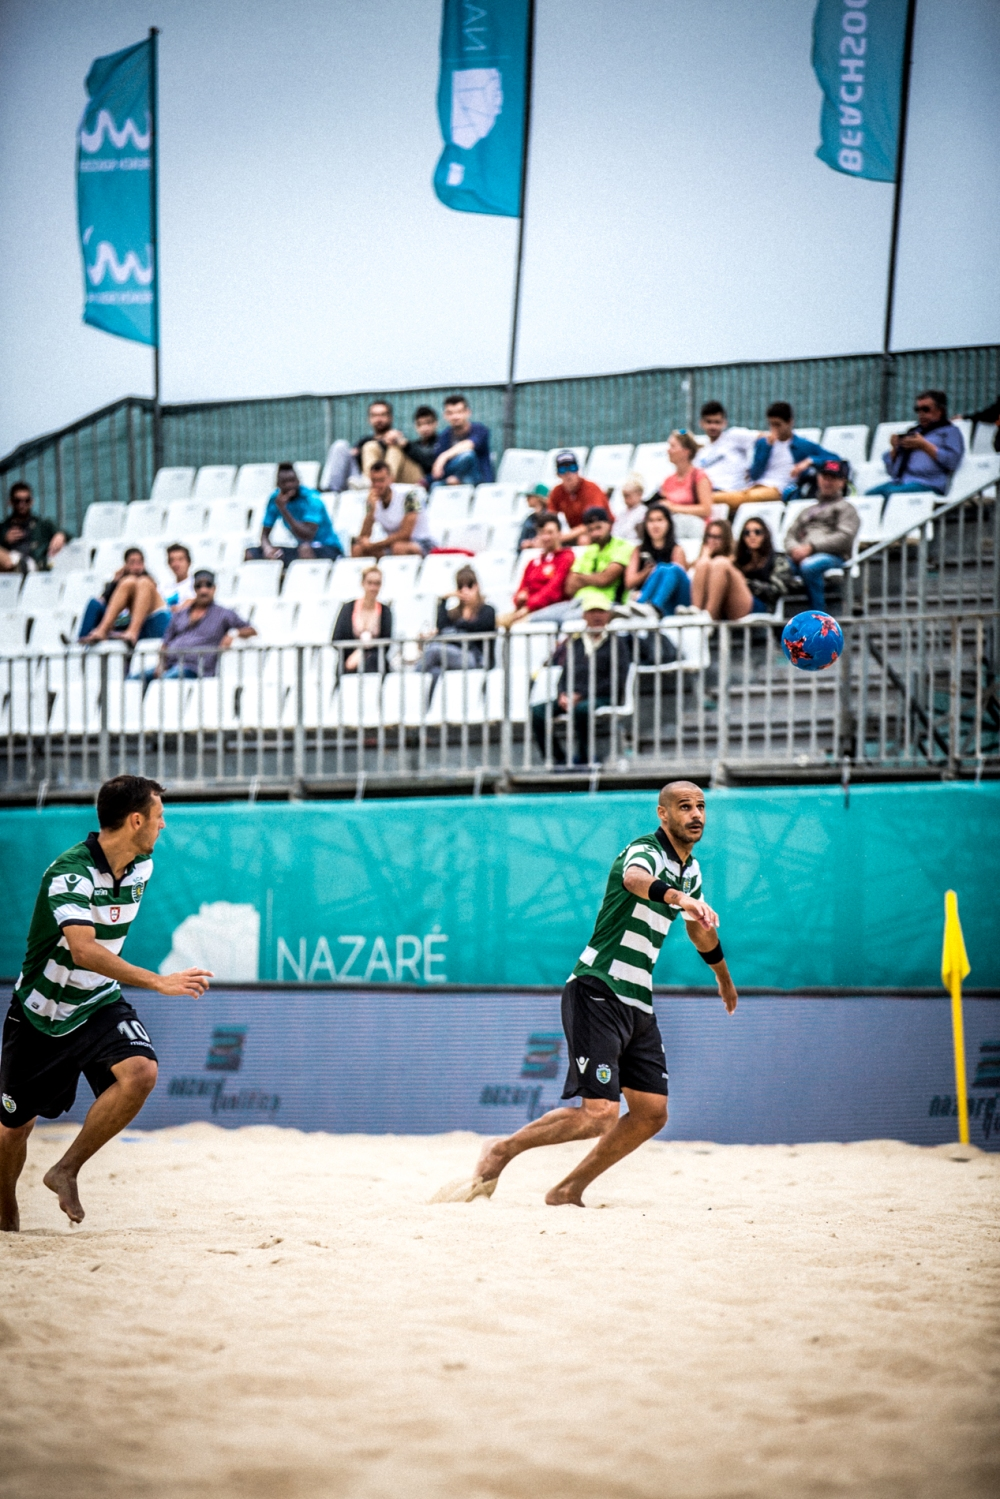 Euro Winners Cup - FIFA beach soccer Nazaré 2017 documented by ROMAIN STAROS at THOMAS TREUHAFT0 (9)